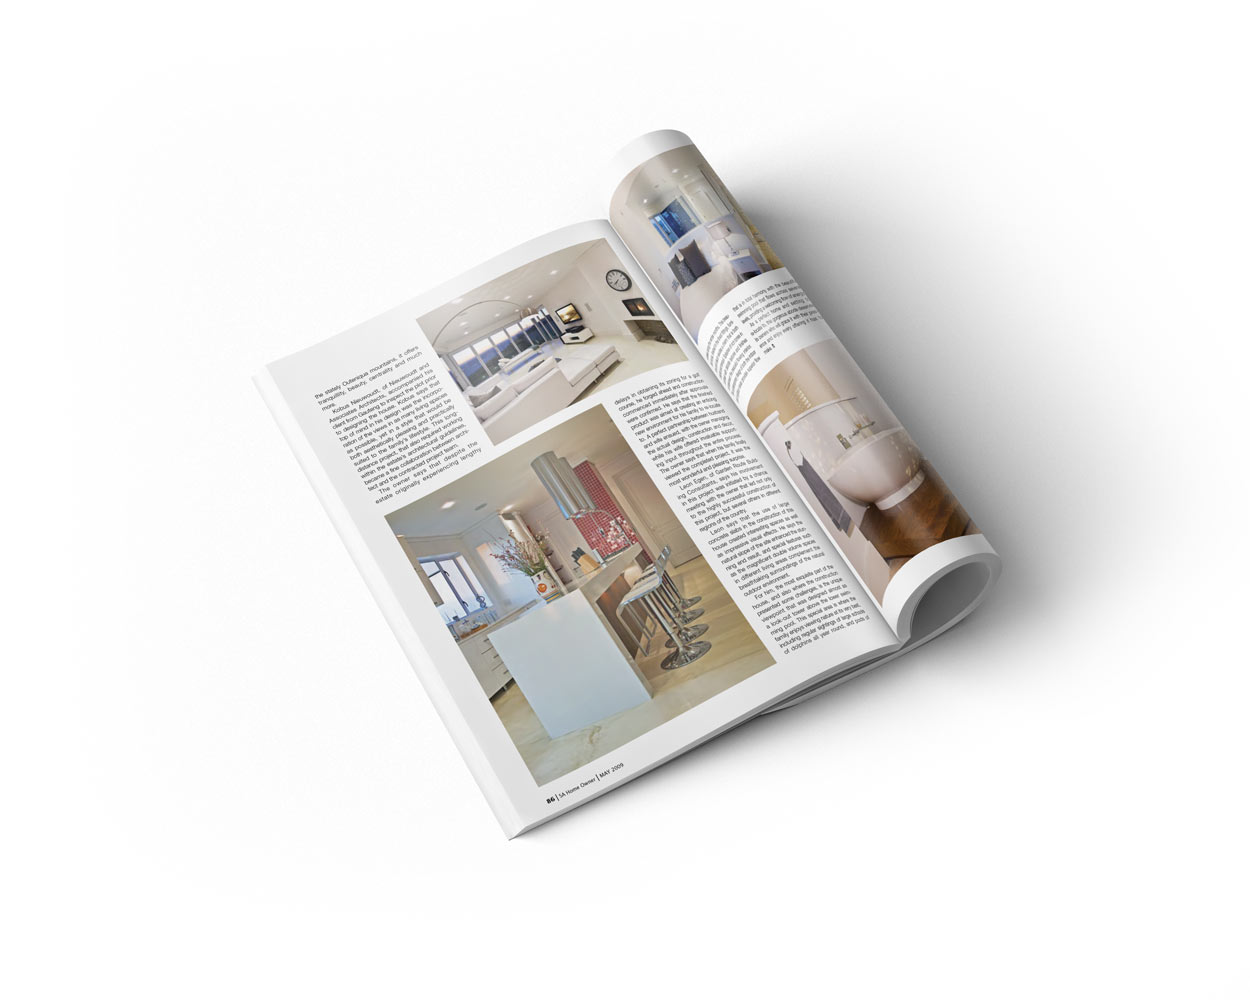 nieuwoudt-architects-home-owner-may-2009-page-4